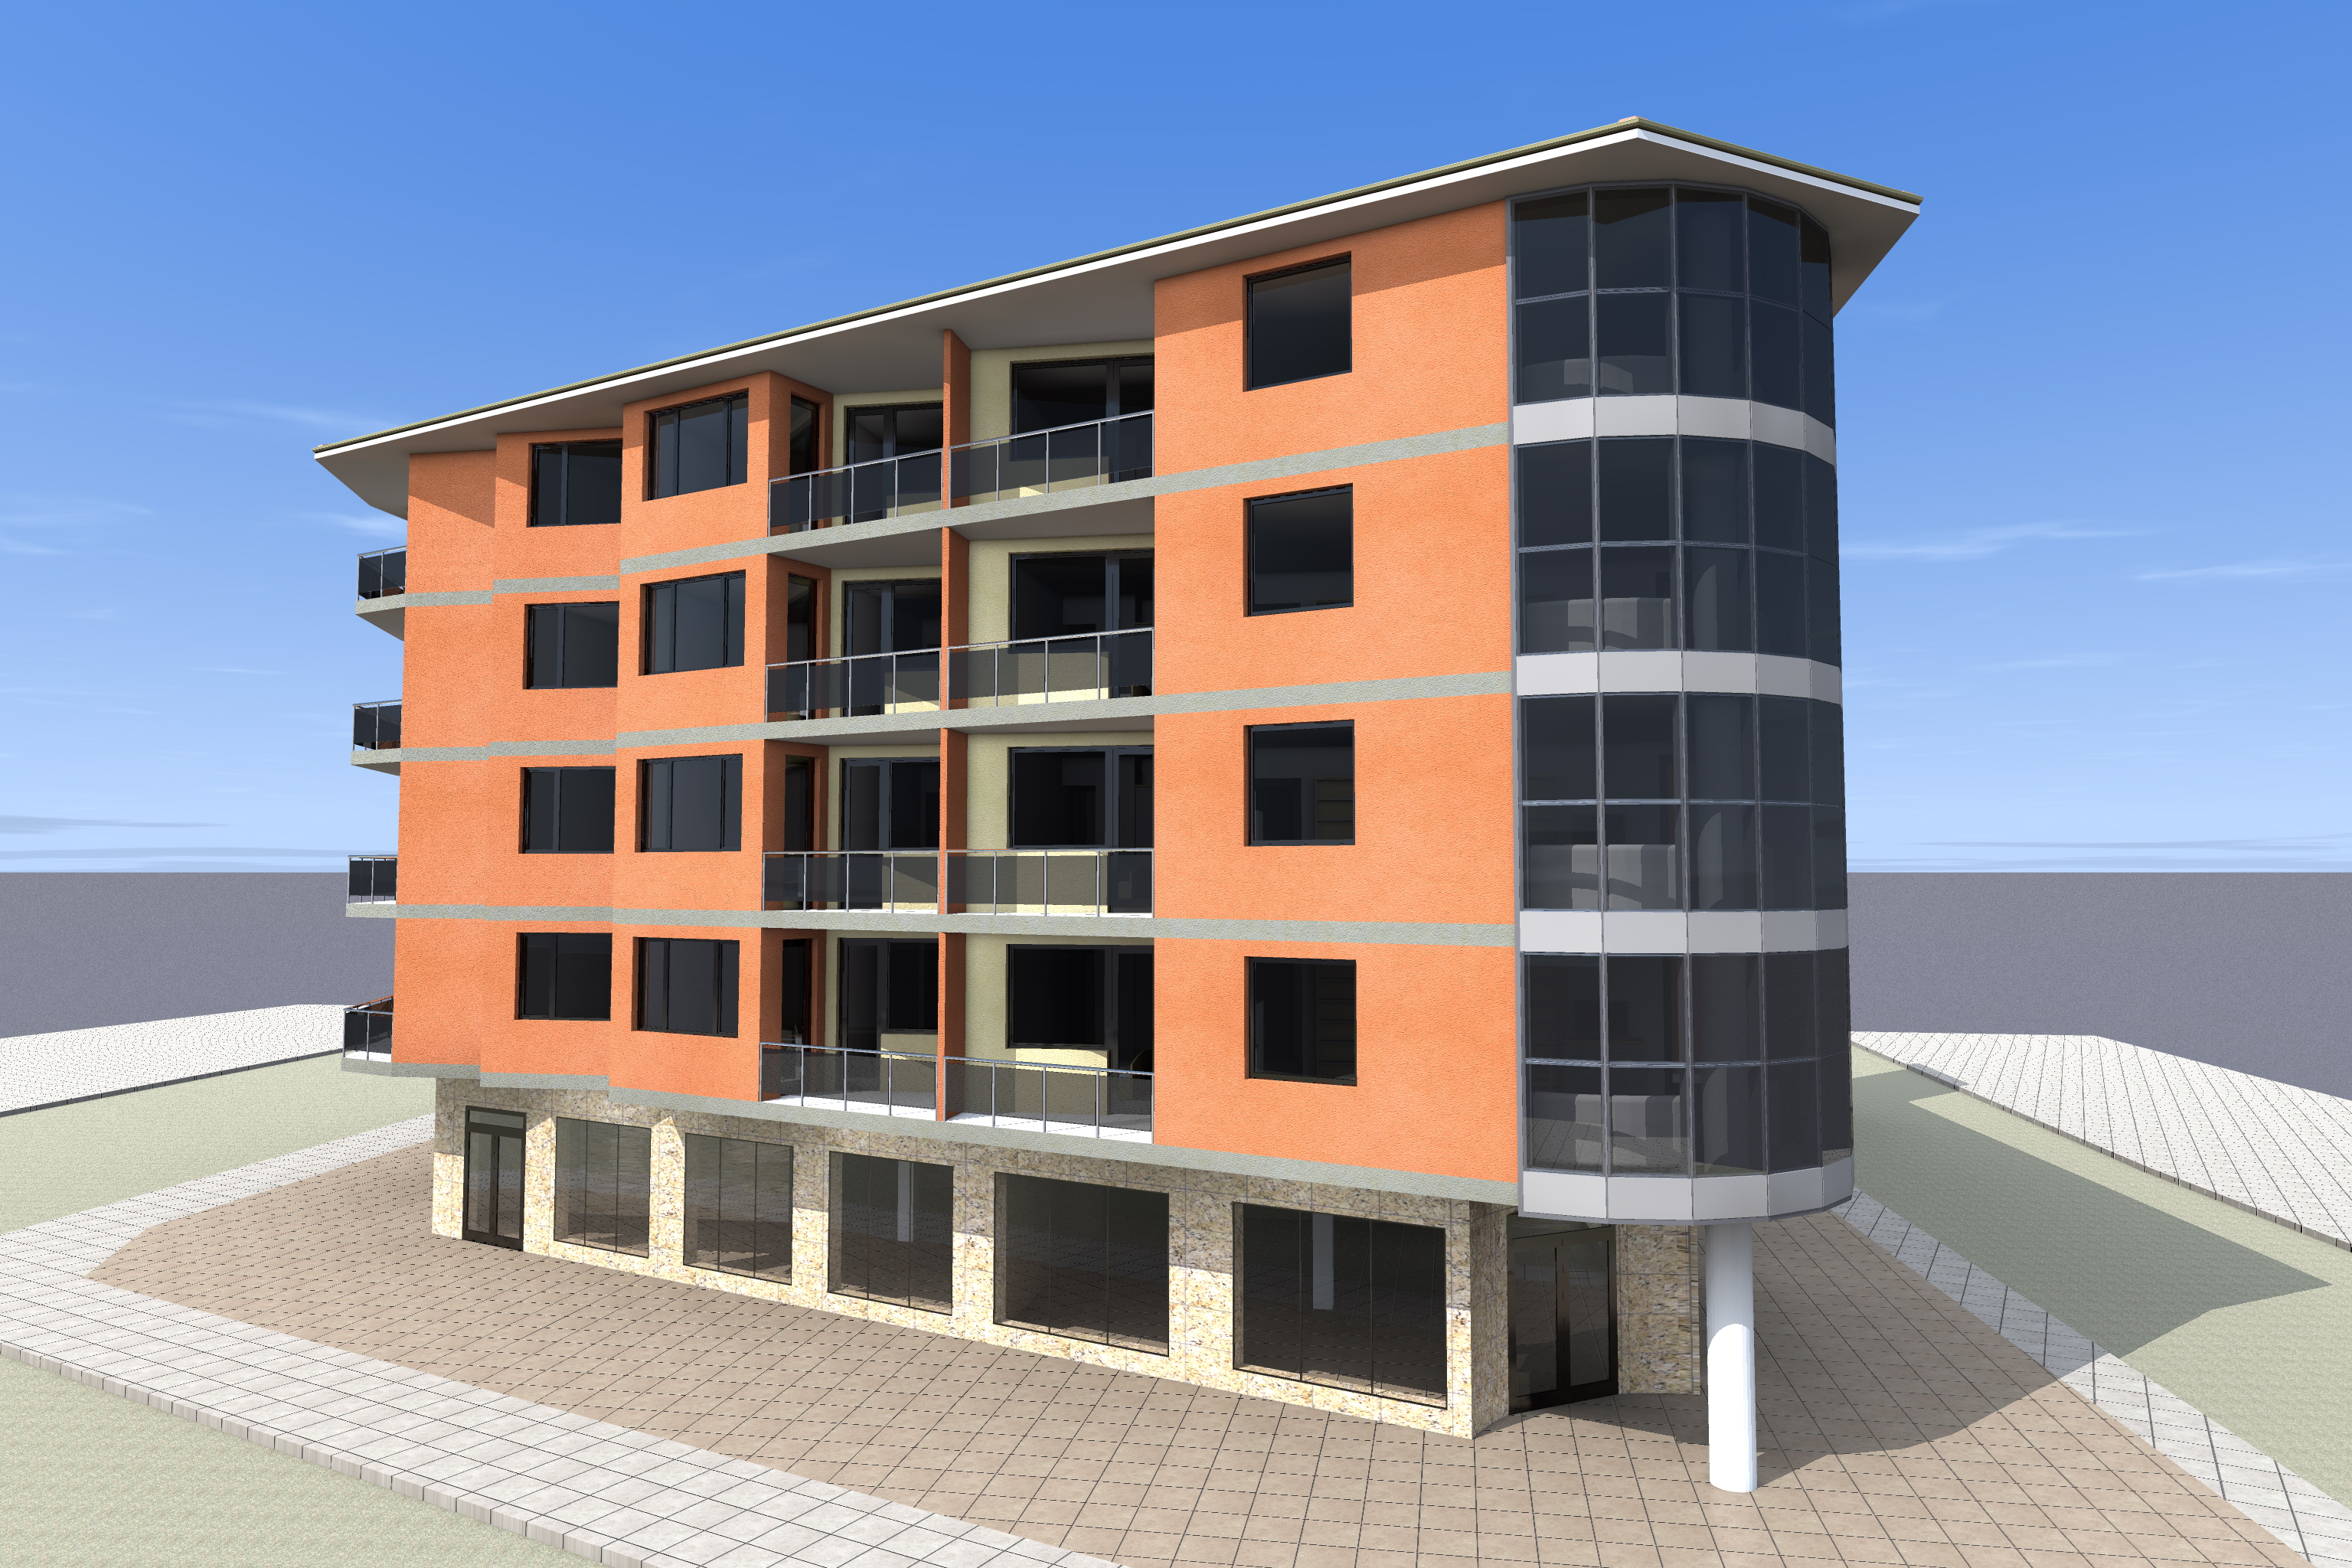 Apartment building plans 8 units via 4 bp unit apartment for Apartment building plans 8 units